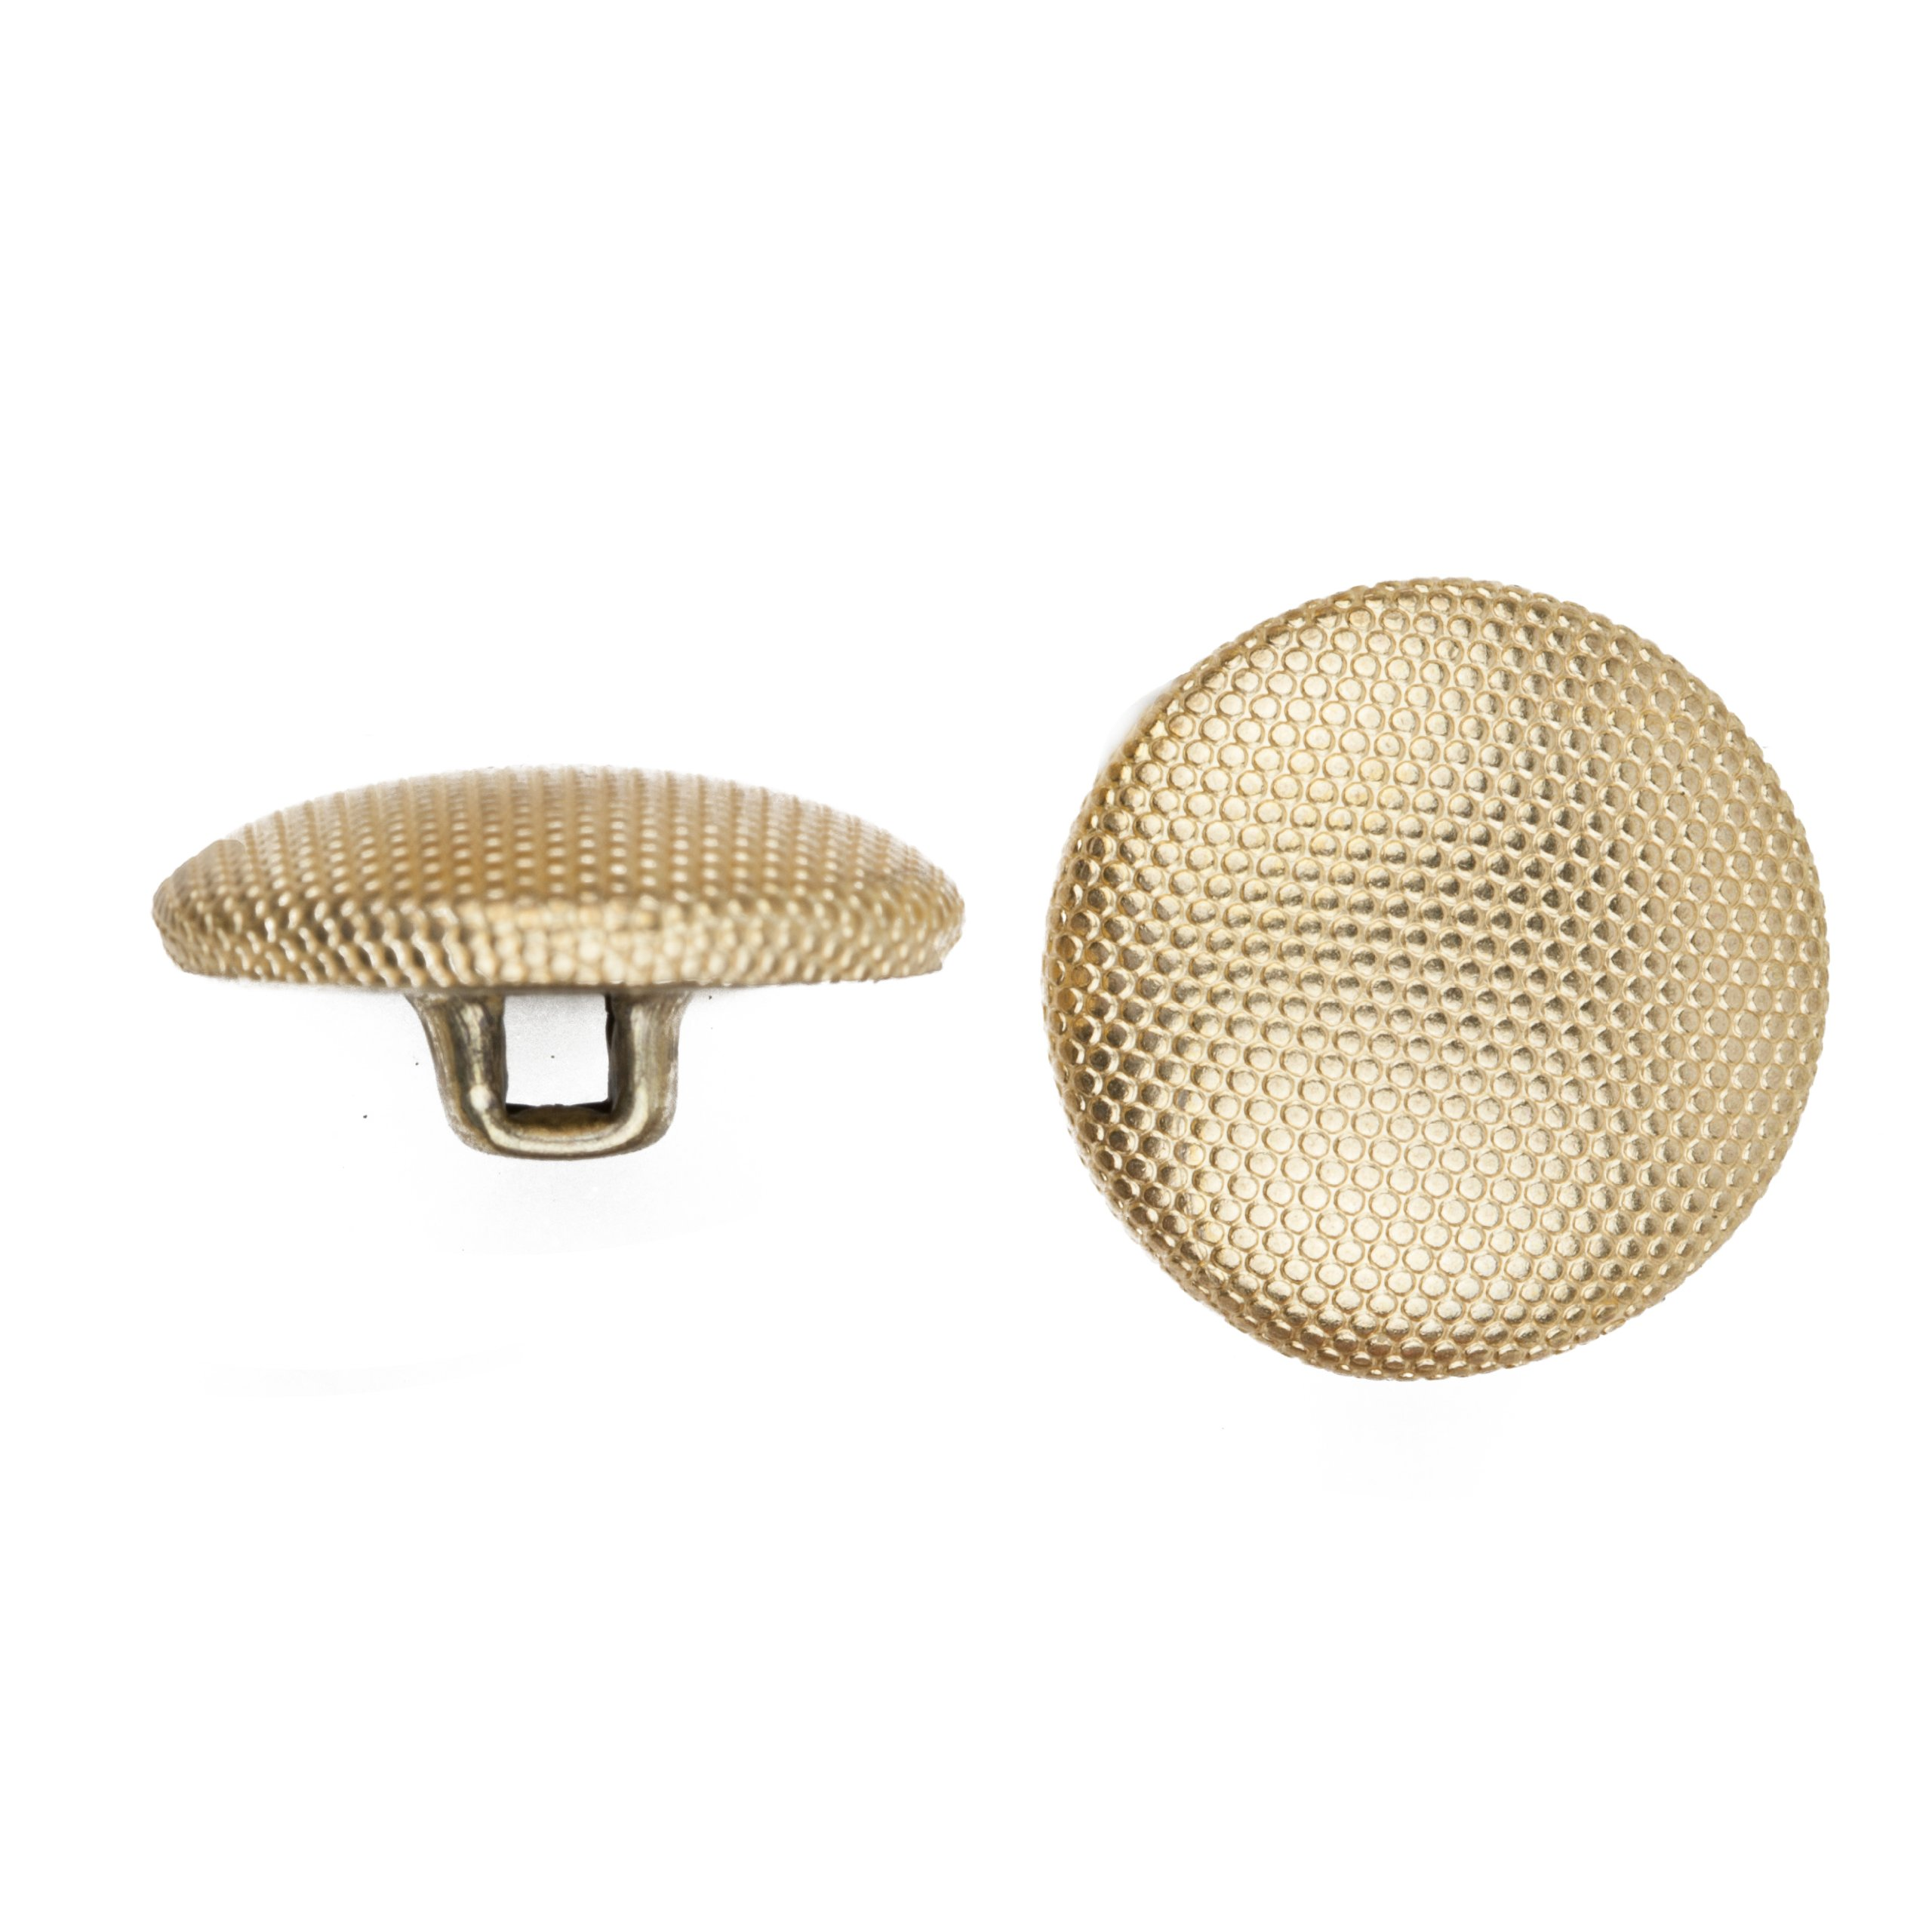 C&C Metal Products 5052 Beaded Pattern Dome Metal Button, Size 24 Ligne, Gold, 72-Pack